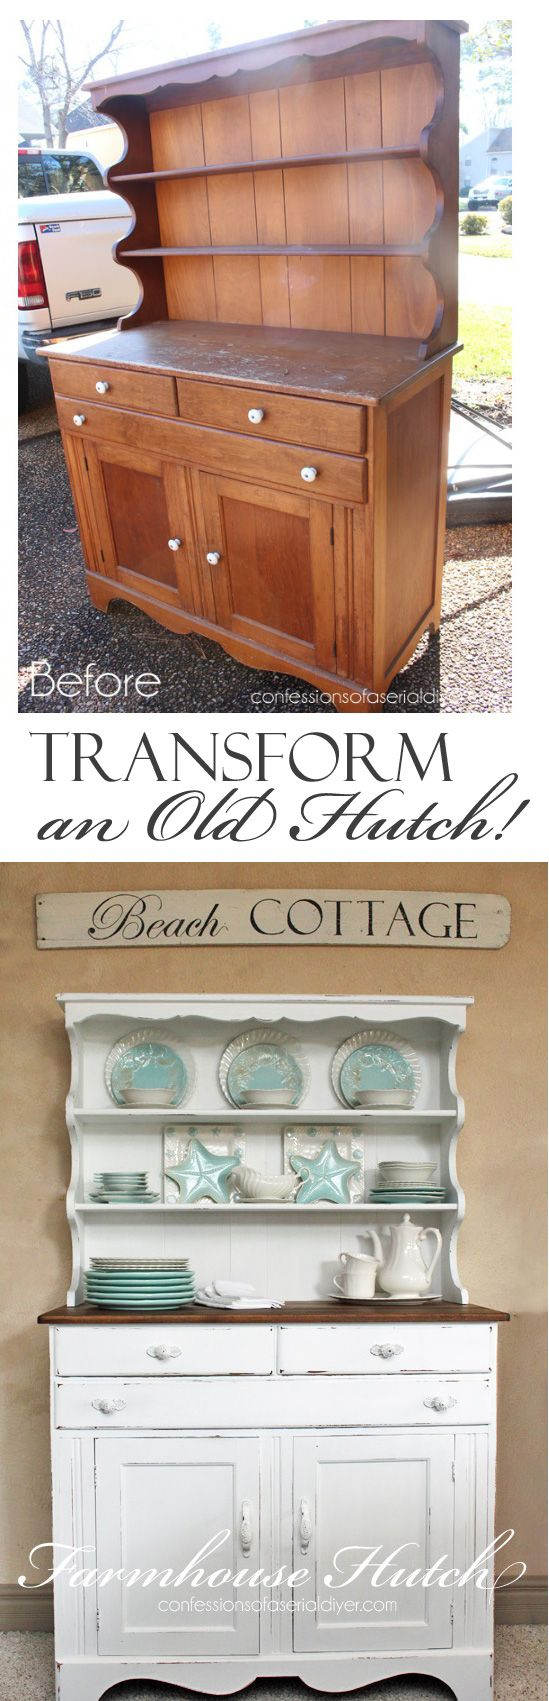 Farmhouse Hutch Makeover from Confessions of a Serial Do-it-Yourselfer: